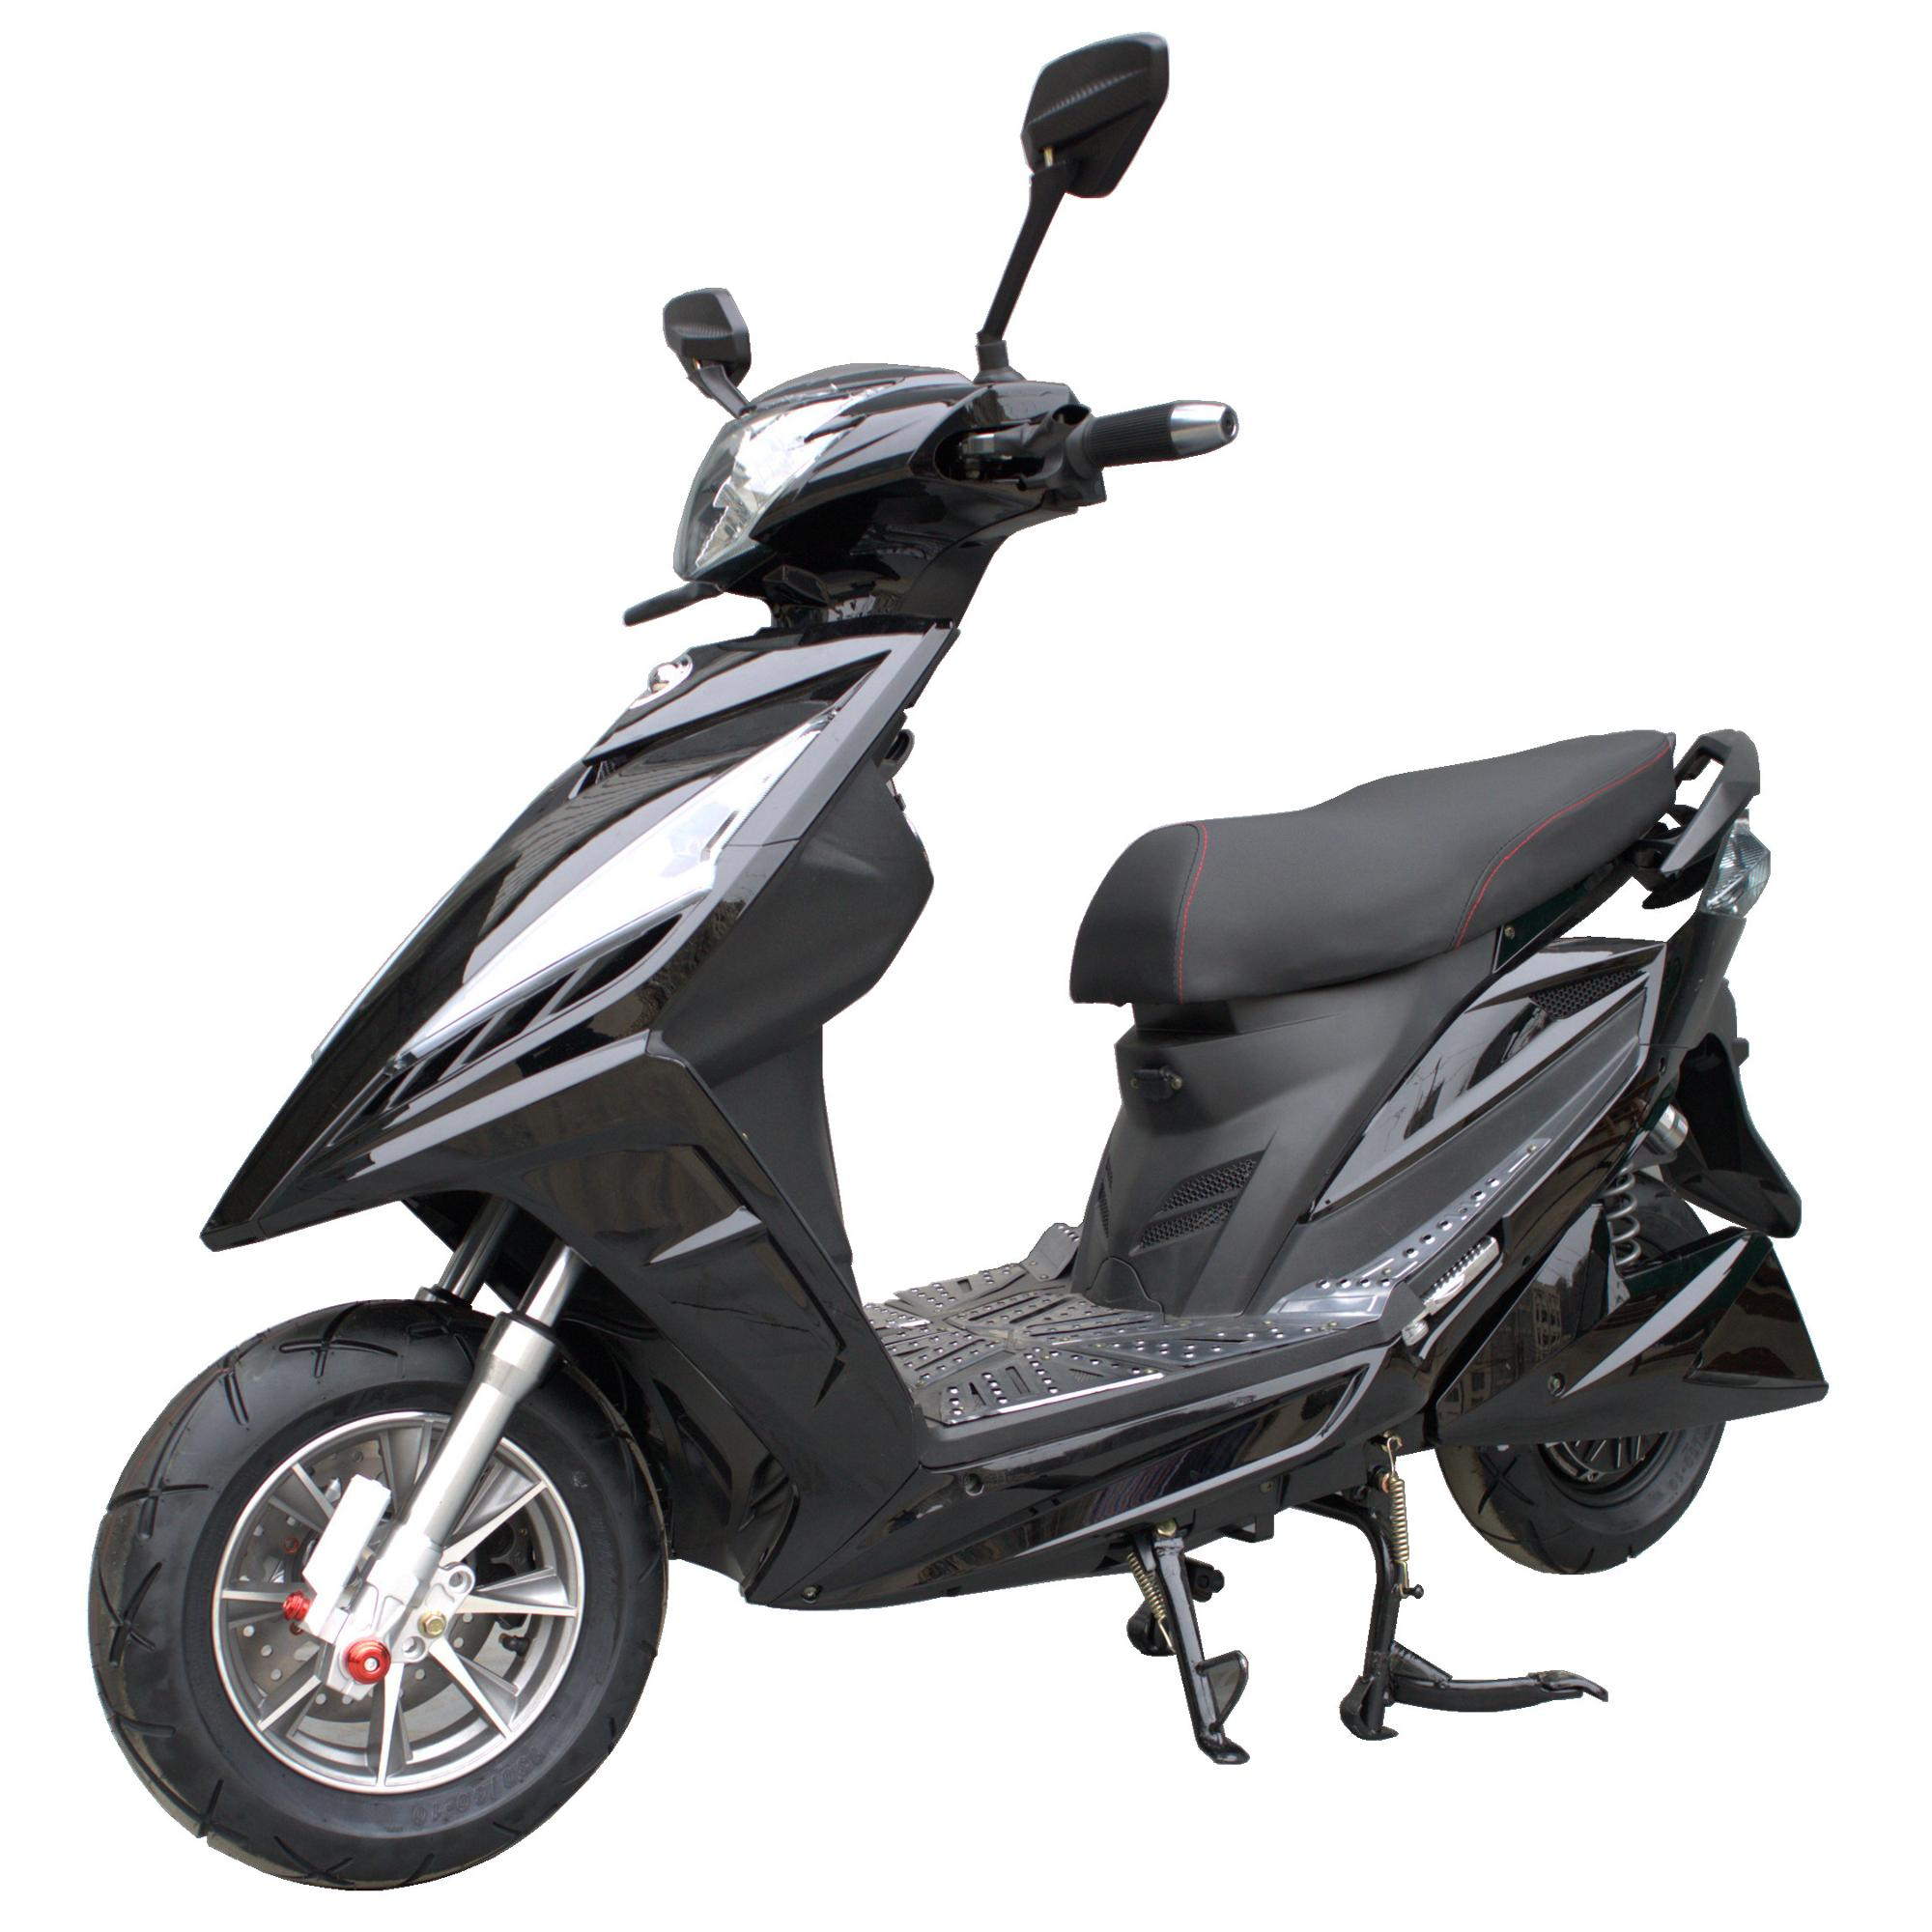 1000W Superior electric scooter motorcycles for the ladies